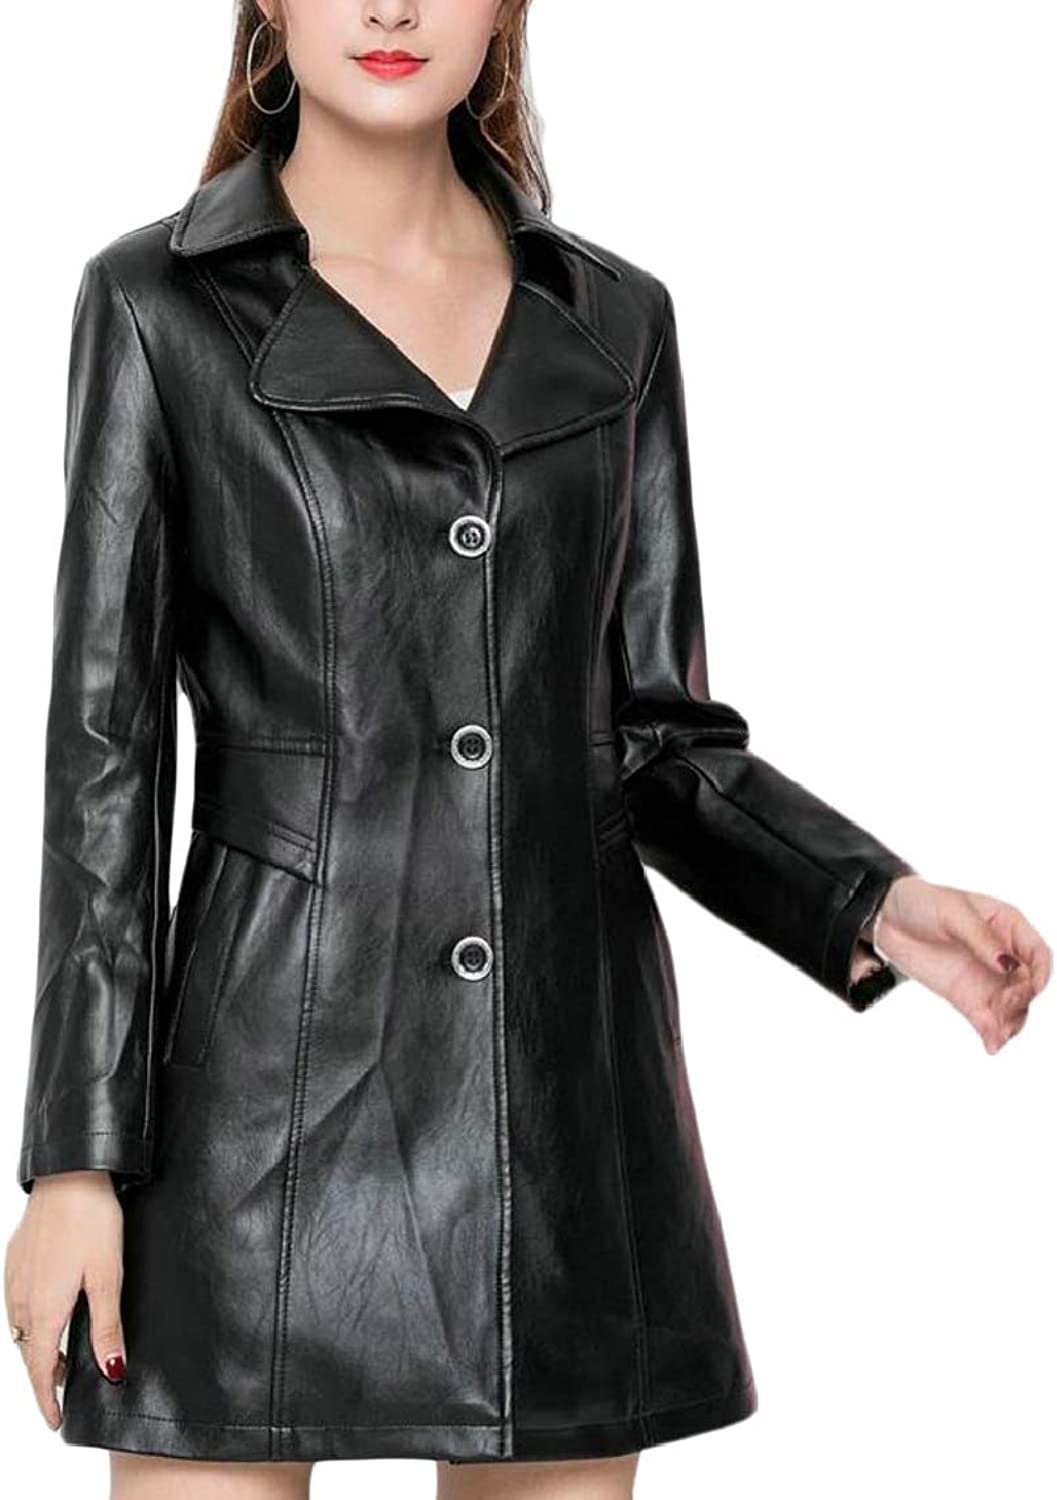 QDCACA Women's Fashion Button Front Faux Leather Blazer Coat Jackets